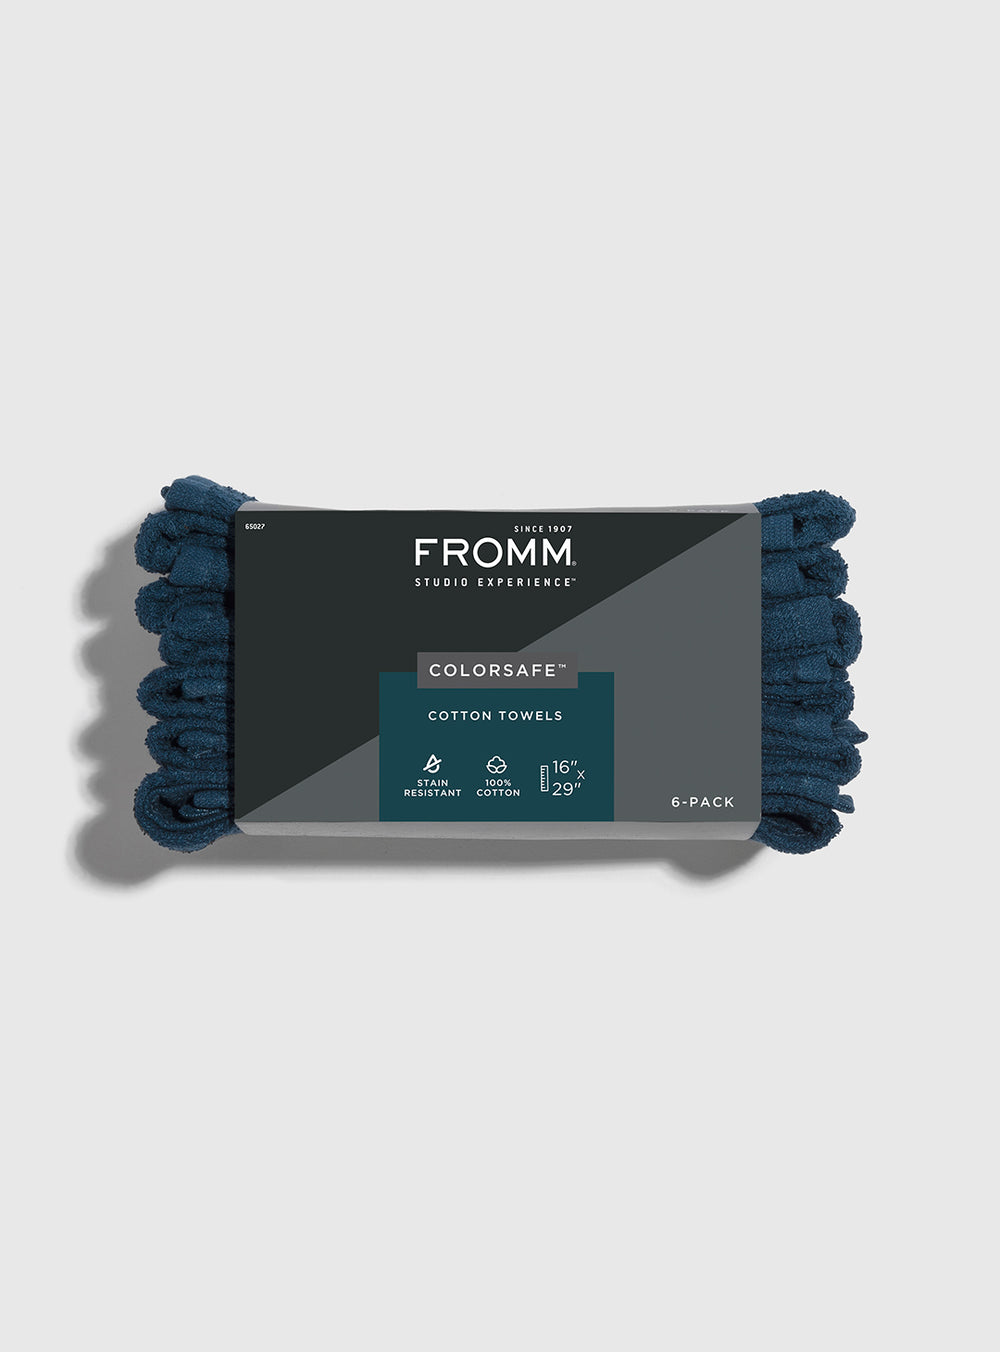 Fromm Pro Professional Hair Salon 6 pack of navy colored Colorsafe Cotton Towels